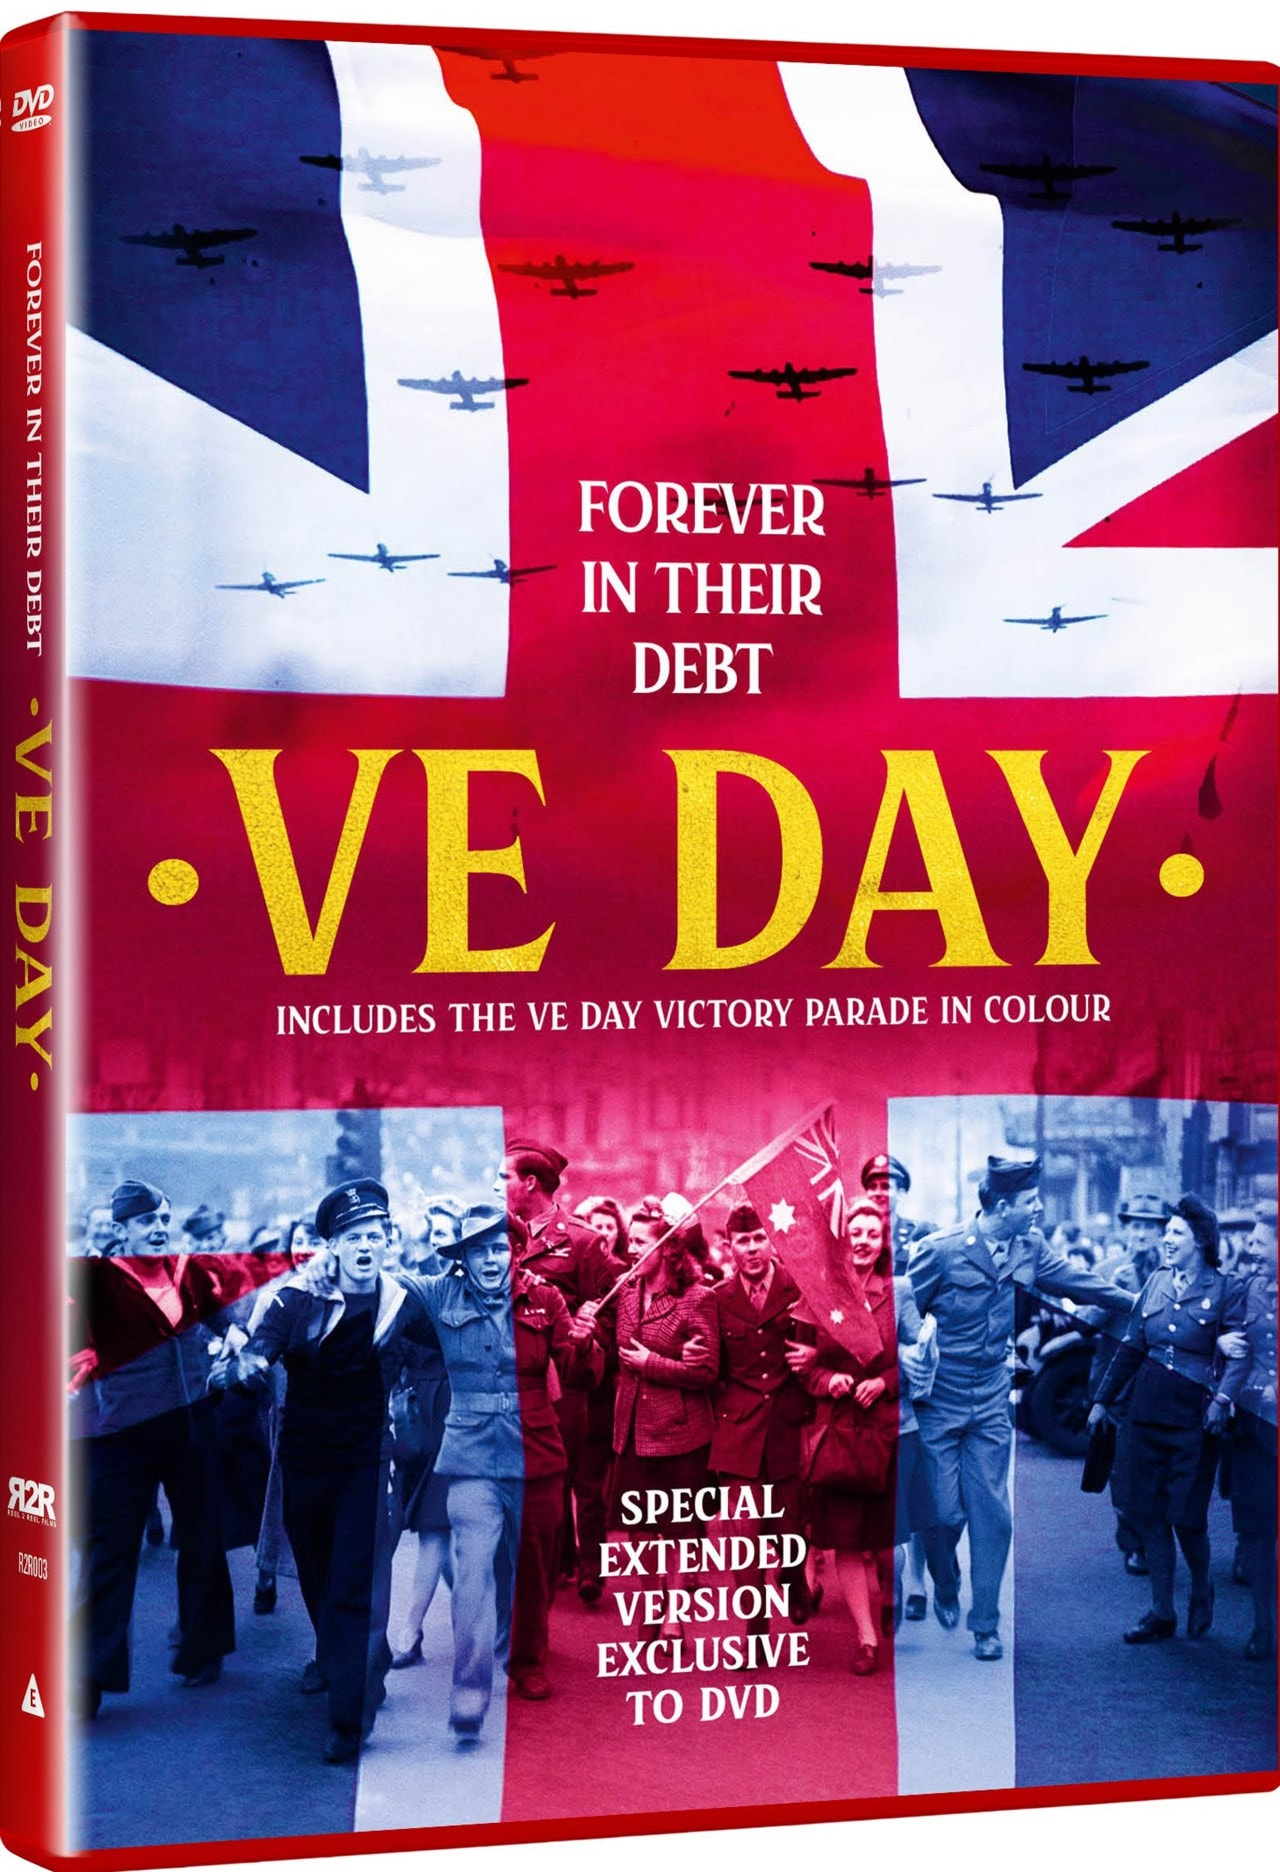 VE Day - Forever in Their Debt - 2